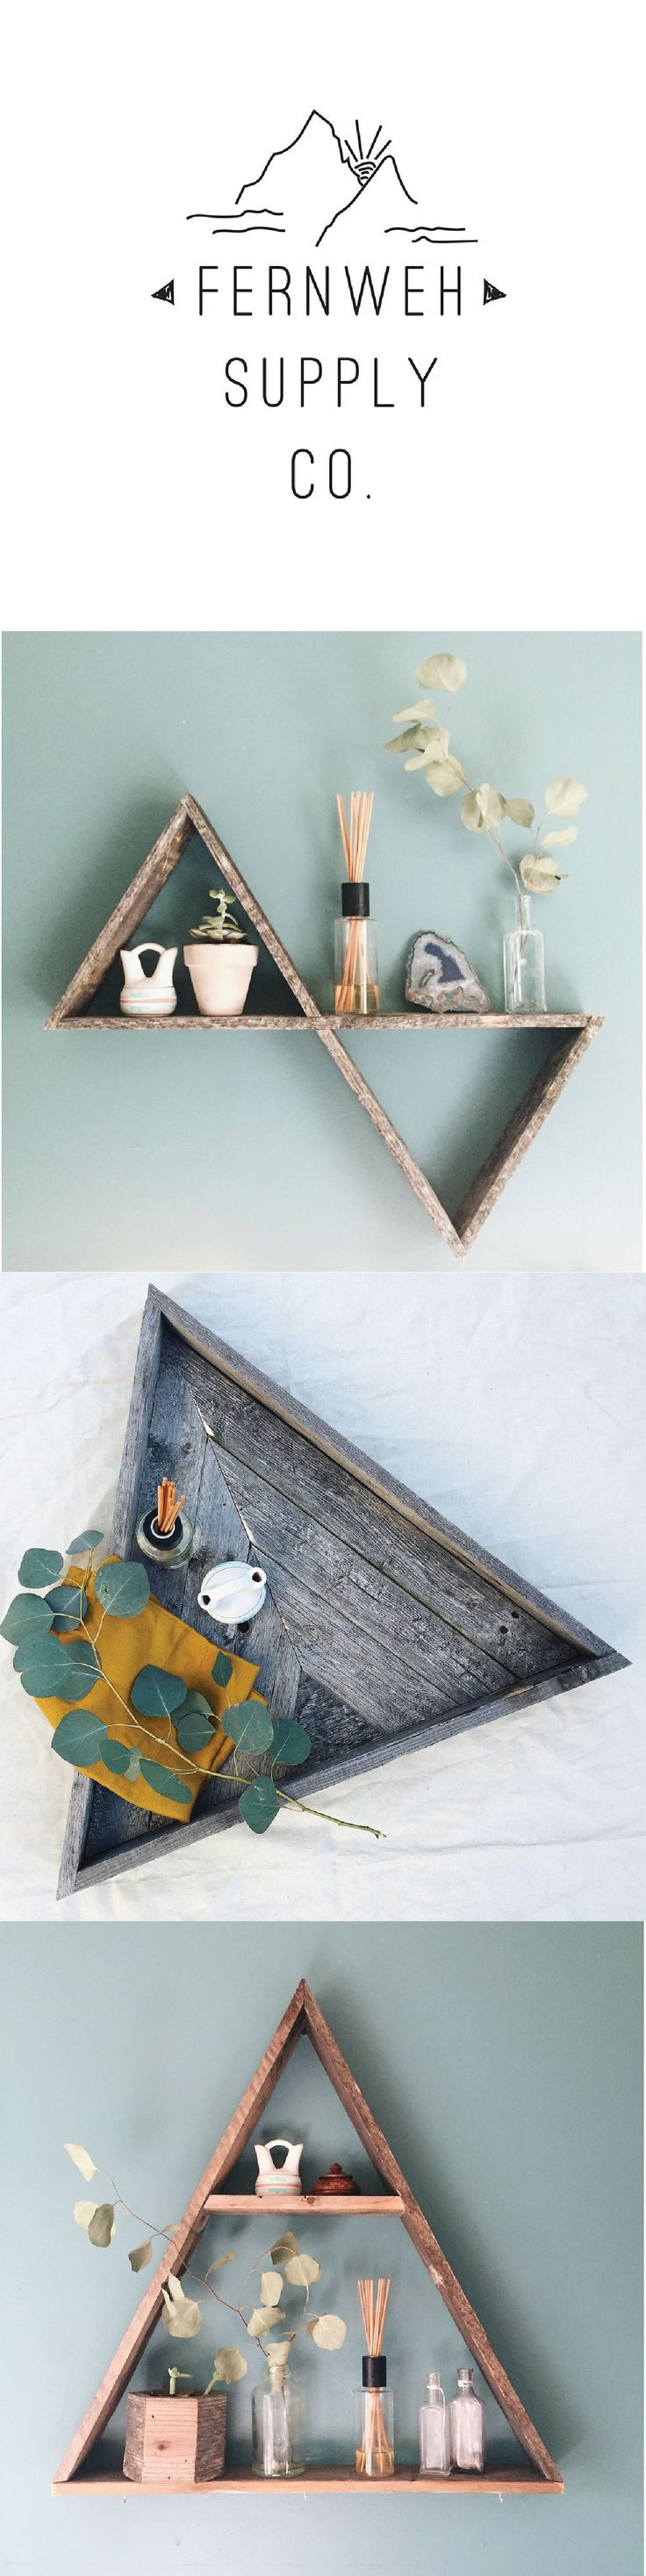 Fernweh Supply Company sells Handcrafted Reclaimed Pallet Wood Home Goods. Click the link to shop Triangle Shelves, Hexagon Shelves, Breakfast Trays, Planters, Hanging Shelves and so much more! Home Decor for the creative and adventurous at heart.